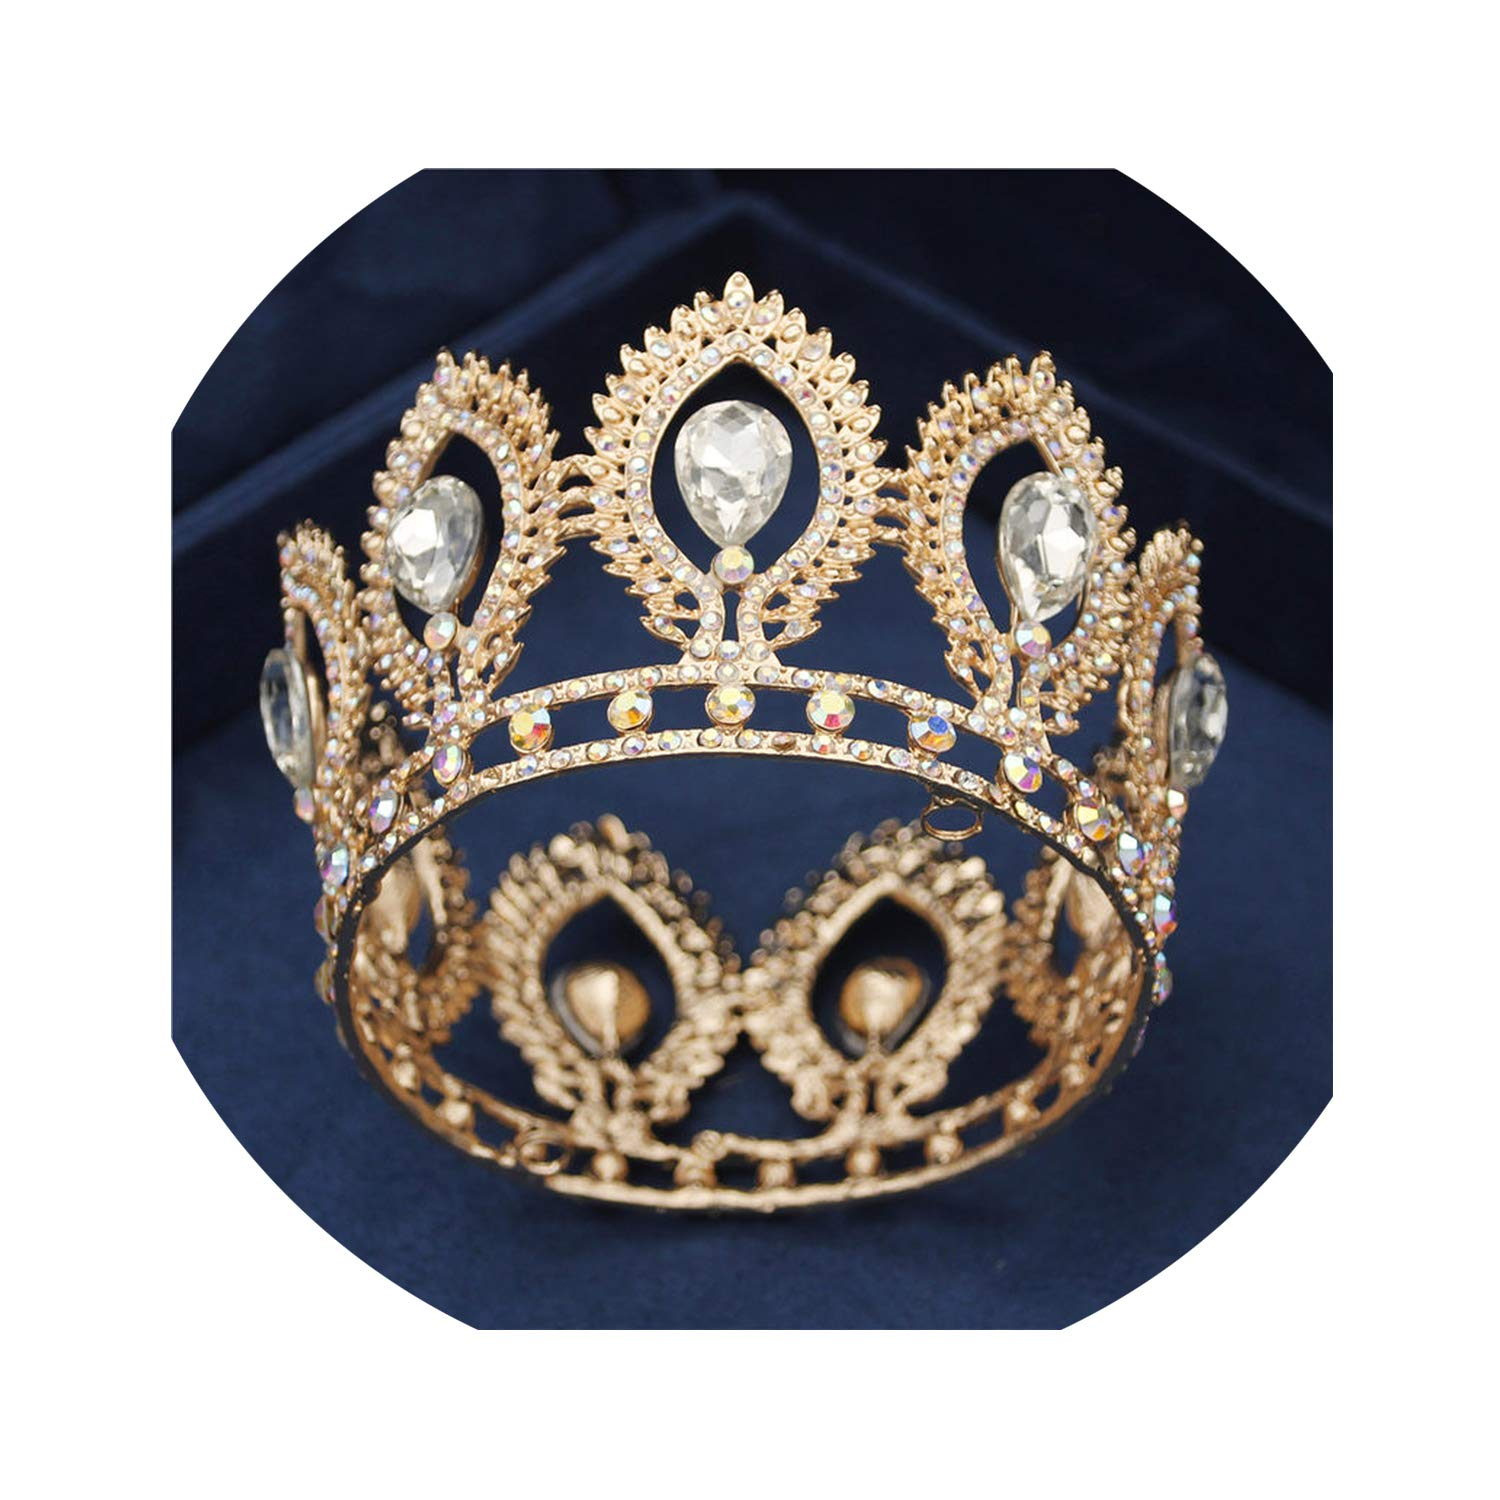 Gold/Silver Crystal Tiaras Baroque Round Crown Classic Royal Queen King Crowns Diadem Prom Wedding Hair